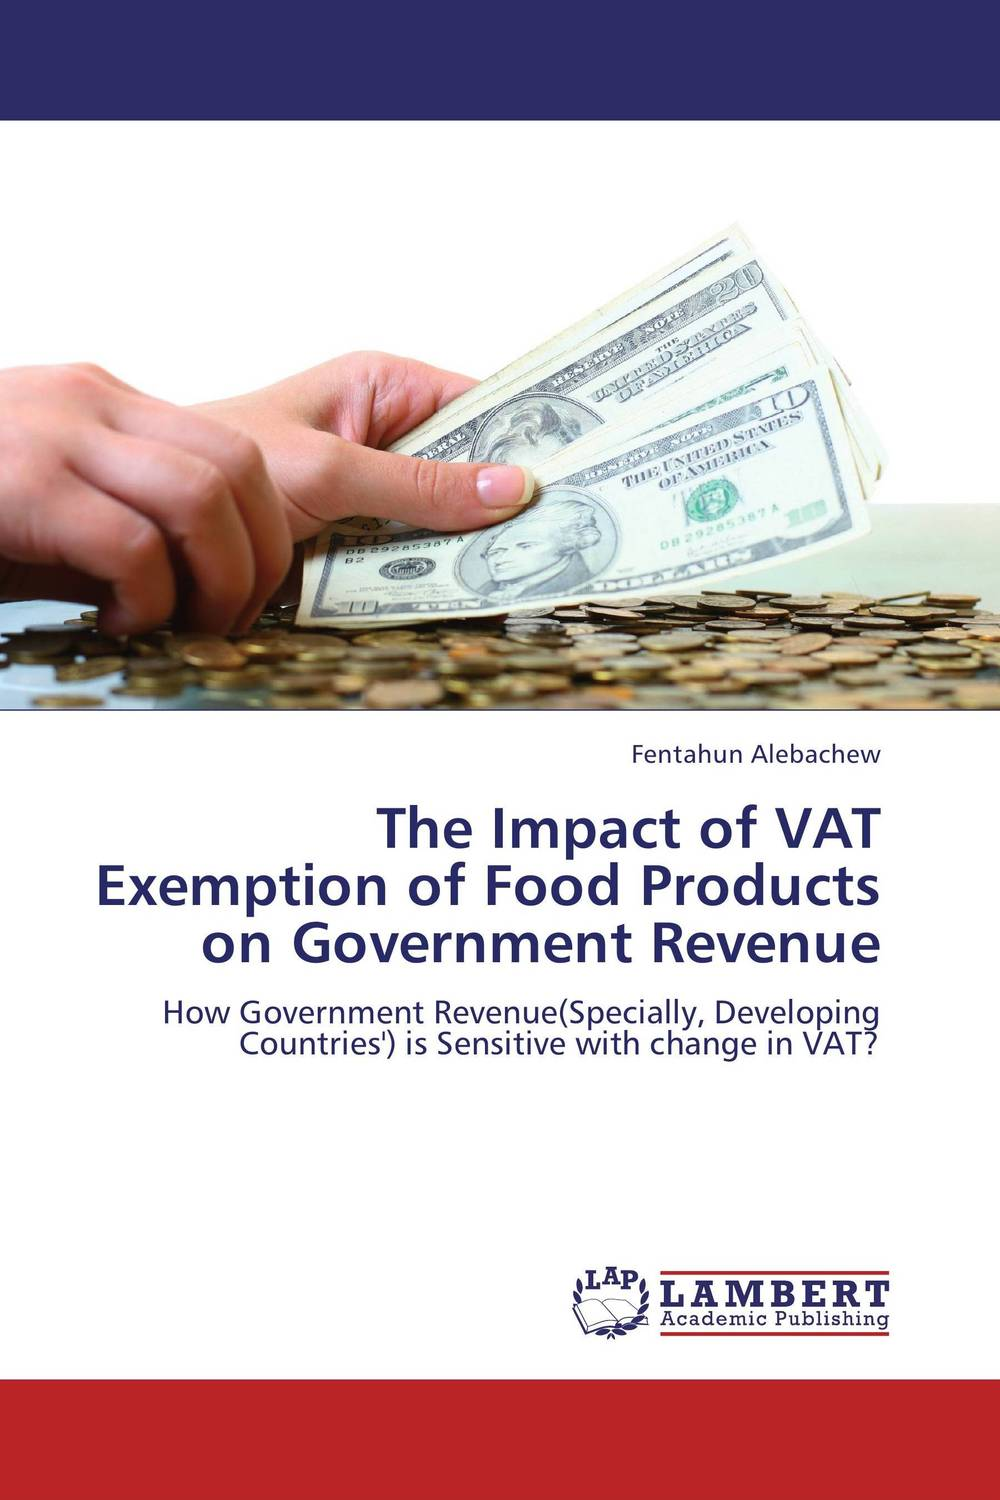 The Impact of VAT Exemption of Food Products on Government Revenue